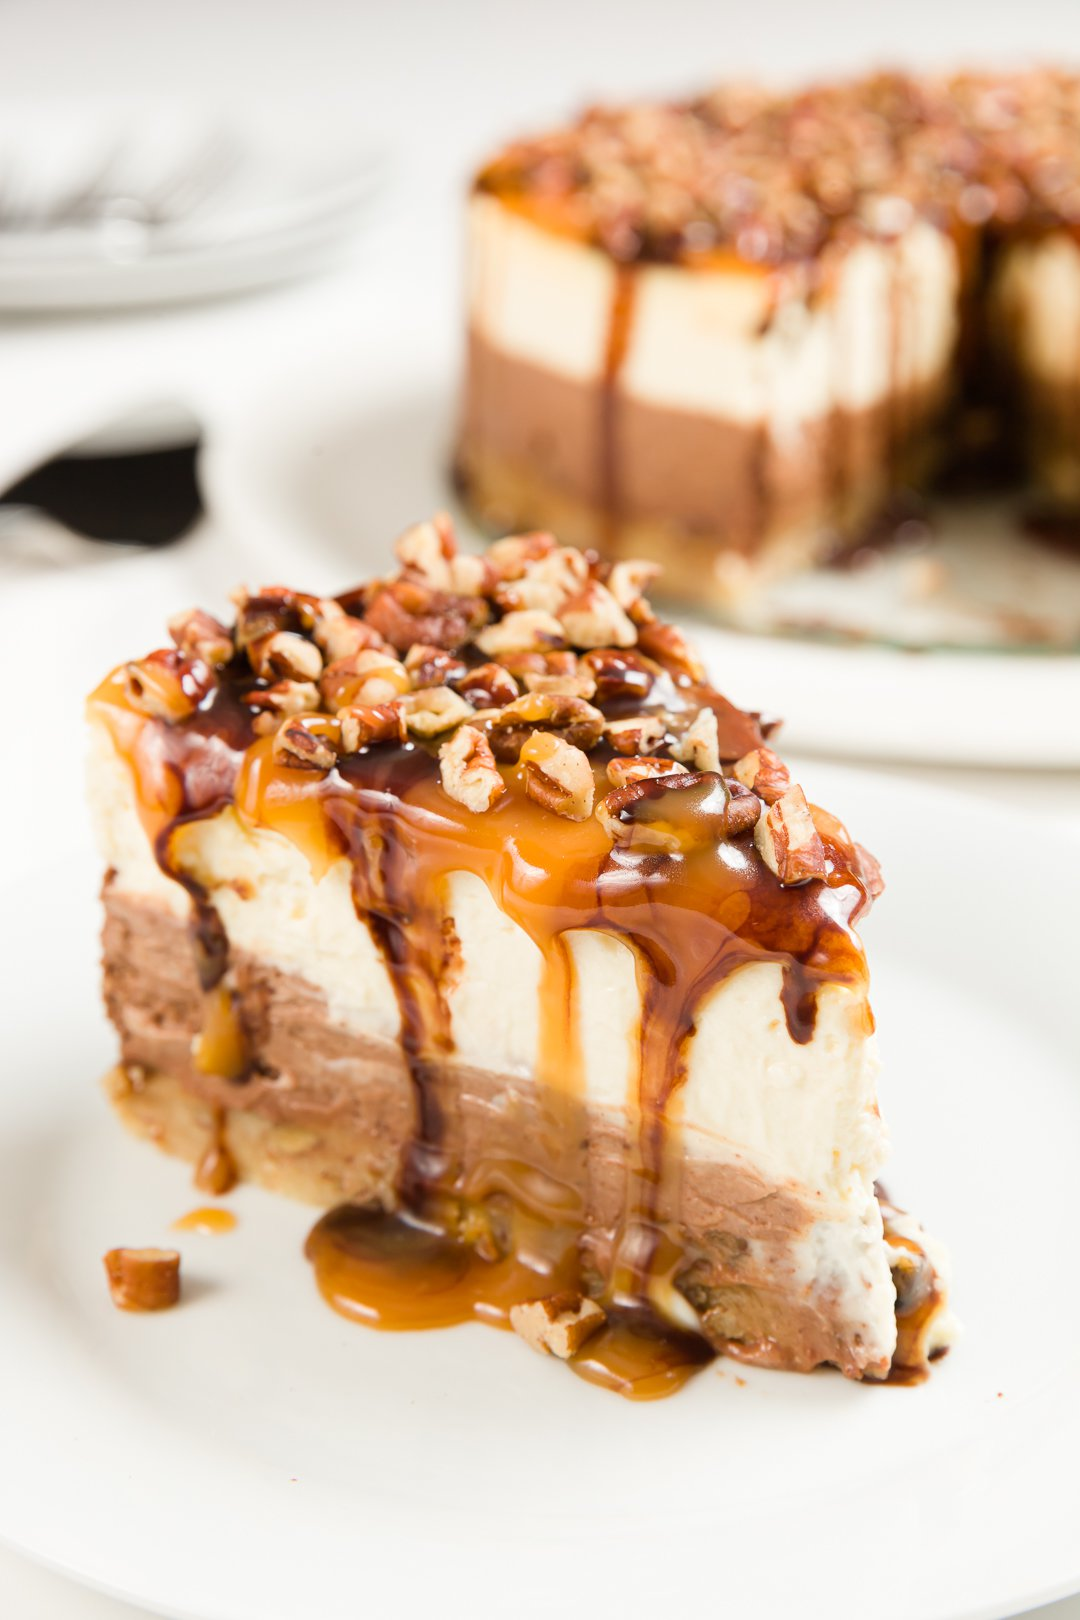 Slice of turtle cheesecake